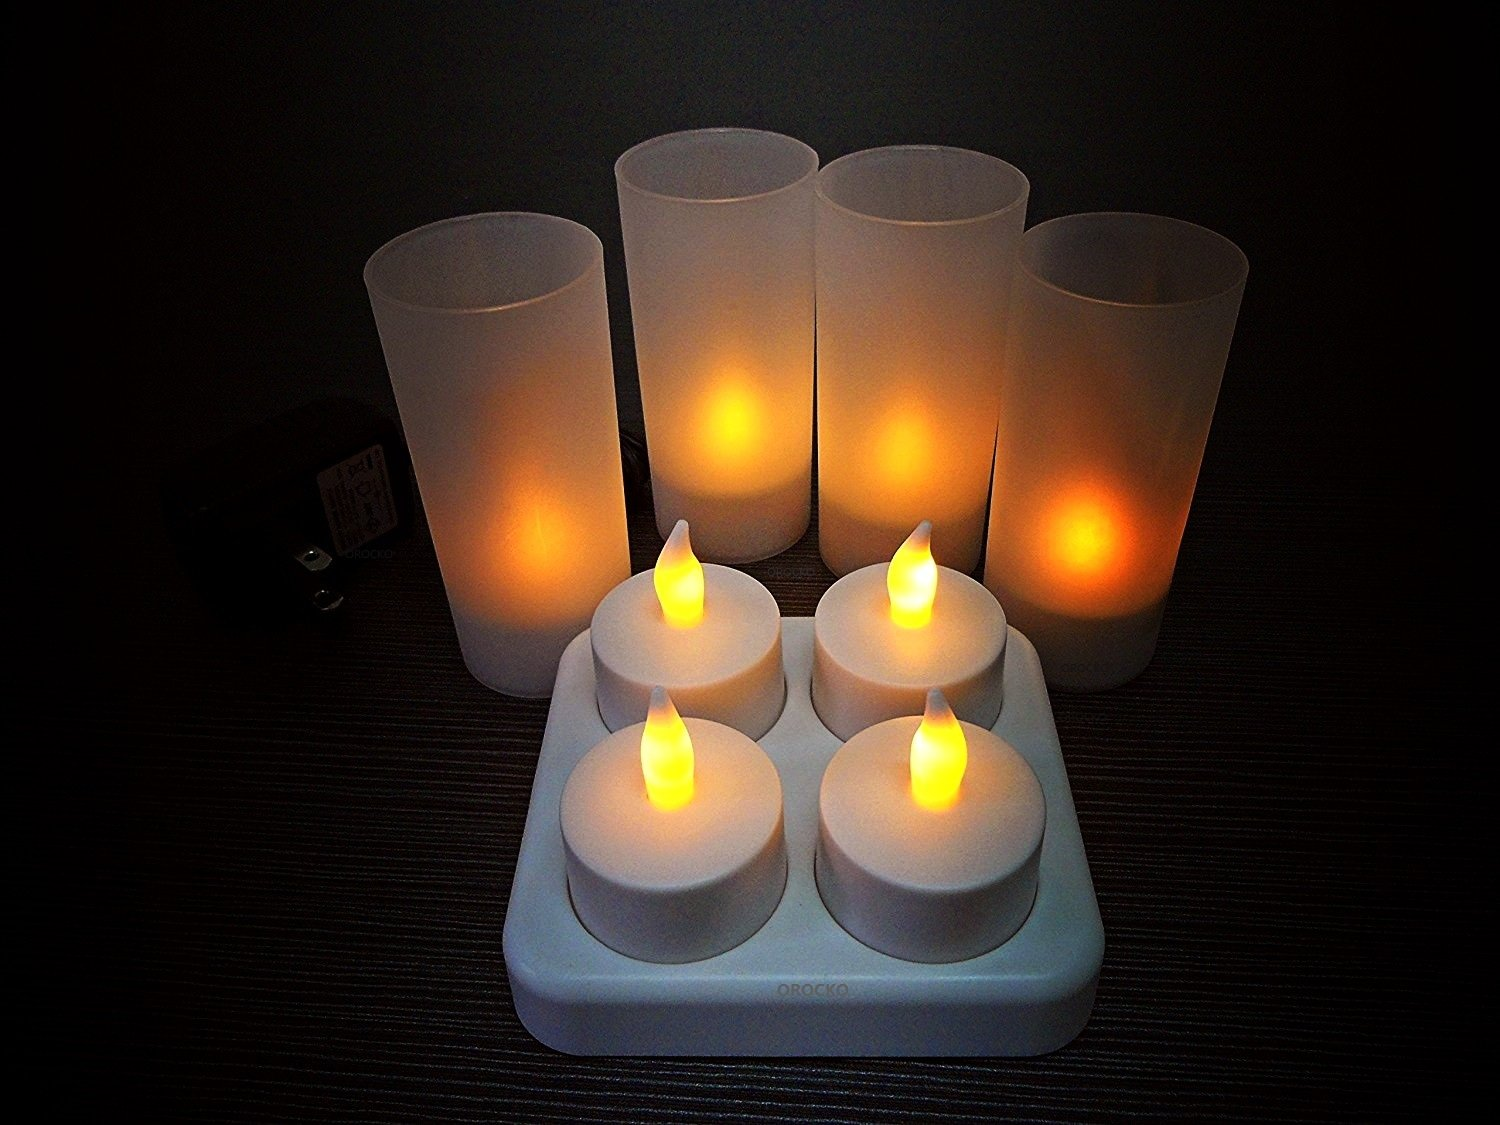 OROCKO Flameless Rechargeable Candles 4PCS Pack,Rechargeable LED Tealights Set,Battery Operated LED Tea light Candle,Long Lasting,Waxless,NO Fire Risk,Safety for Home,Restaurants and Hotel Decoration